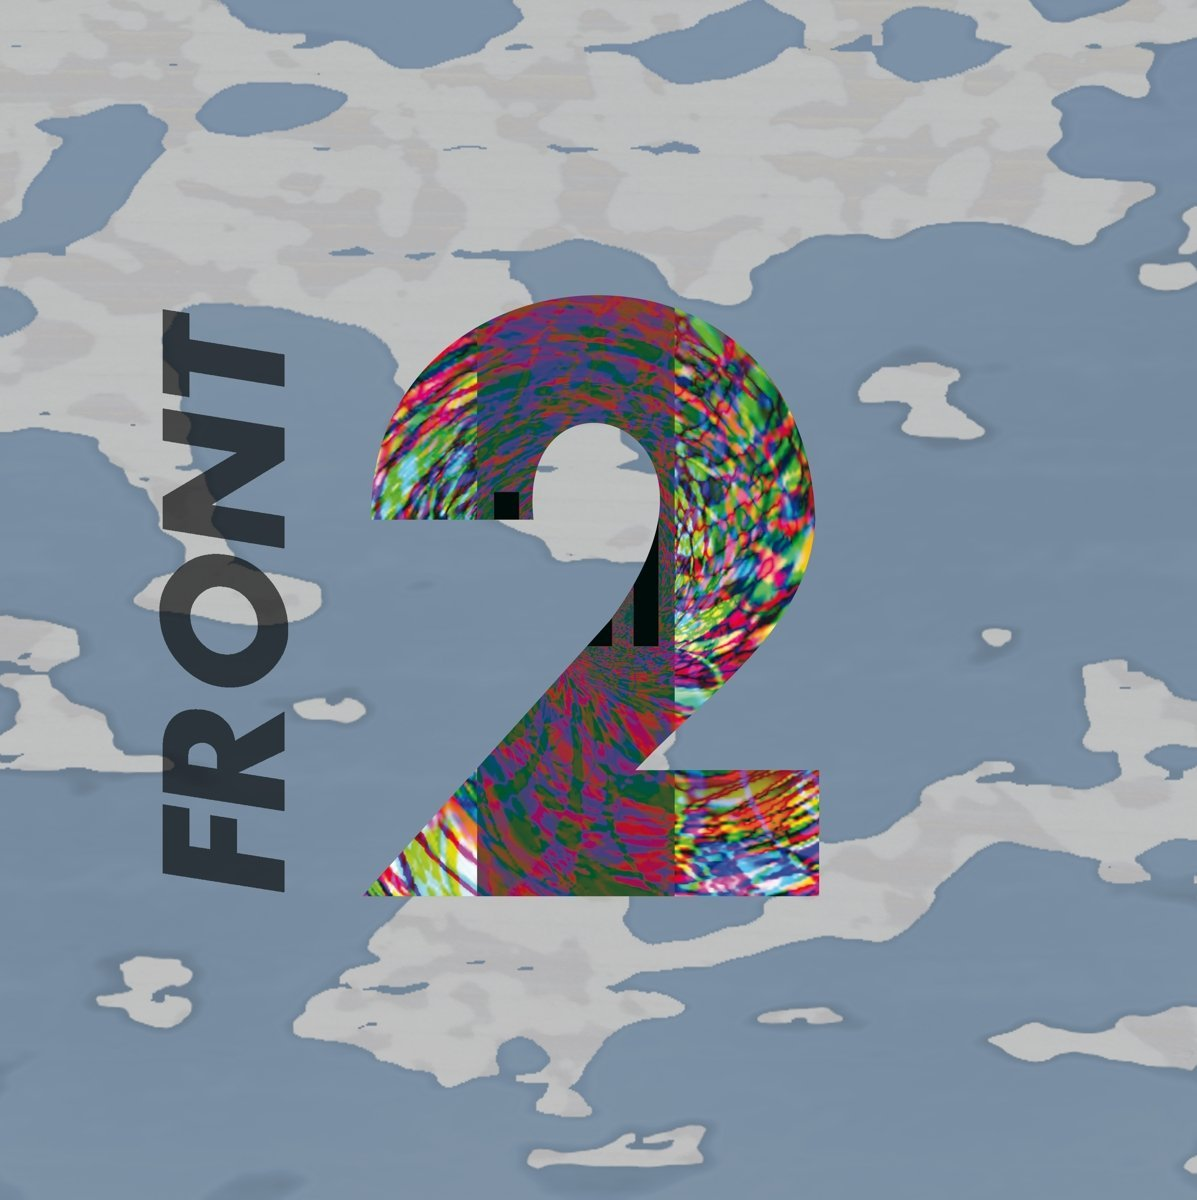 Buy Front 242 Now!